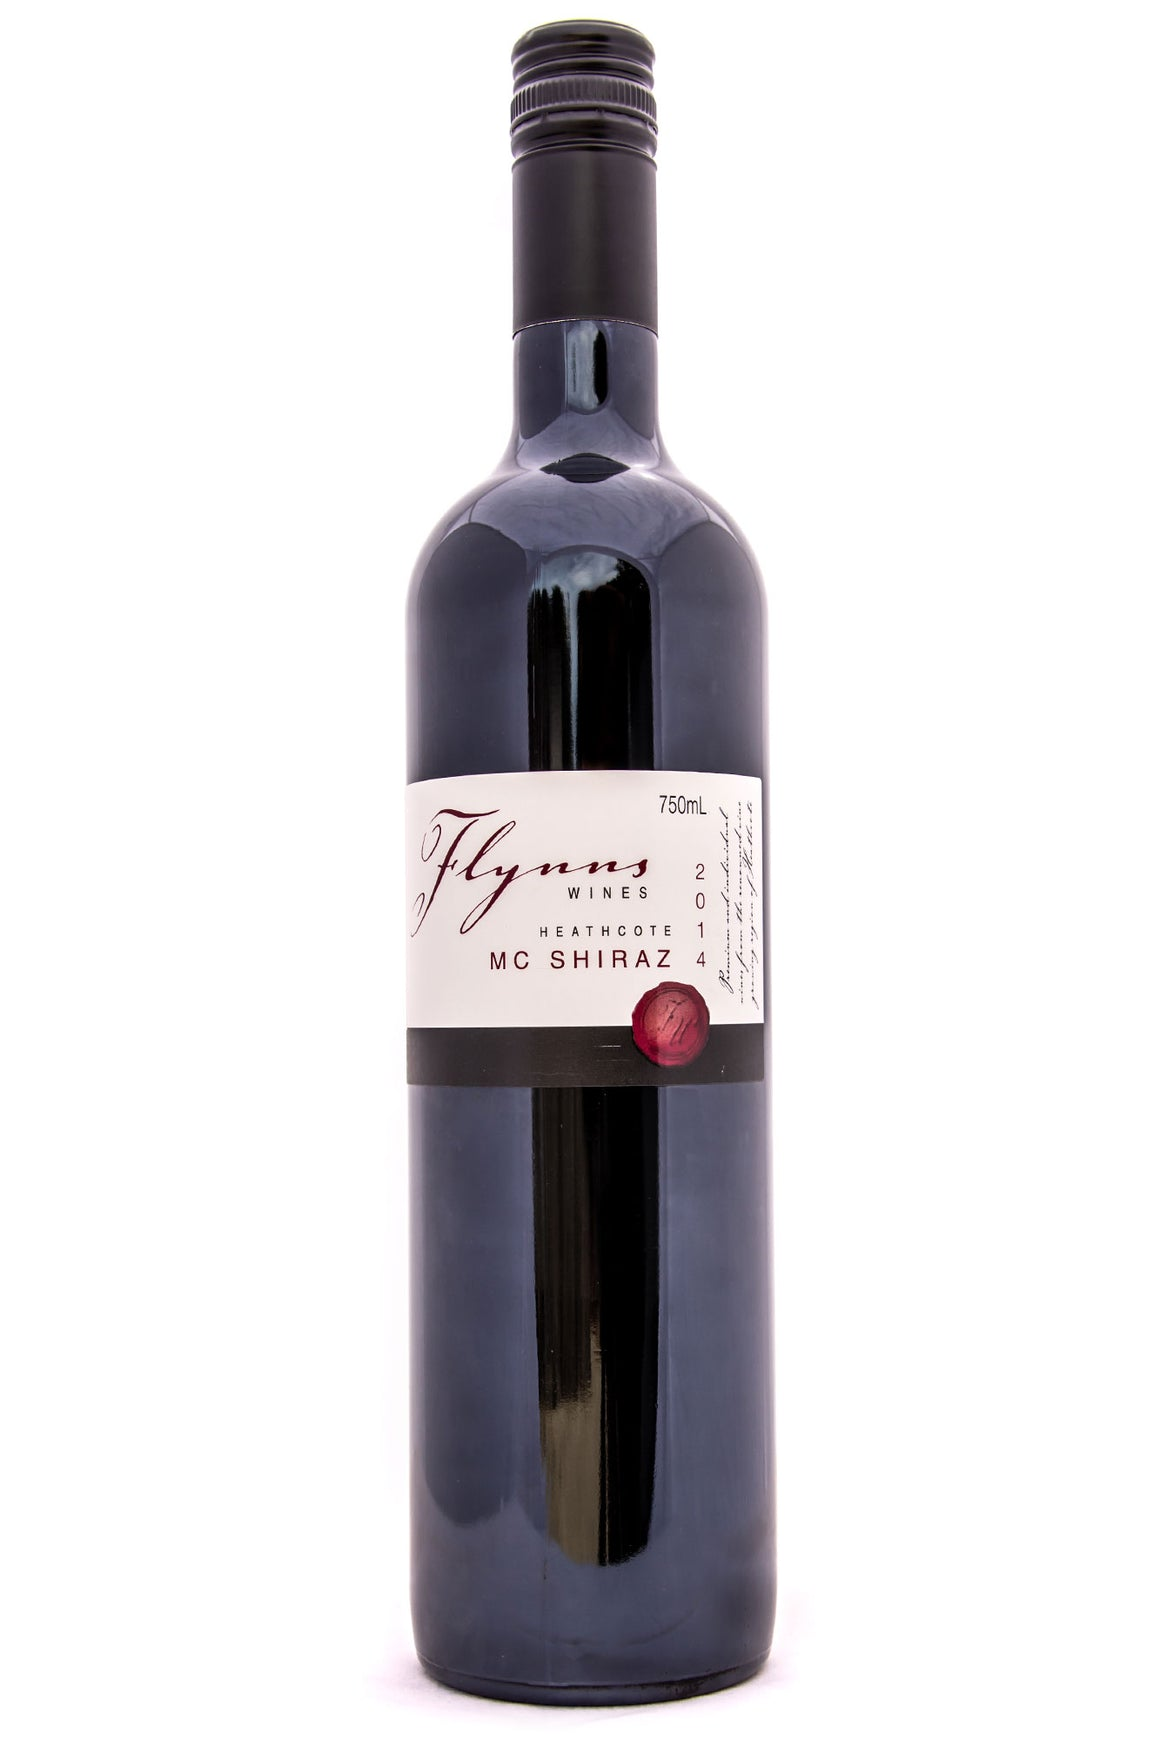 Flynns Wines MC Shiraz 2015